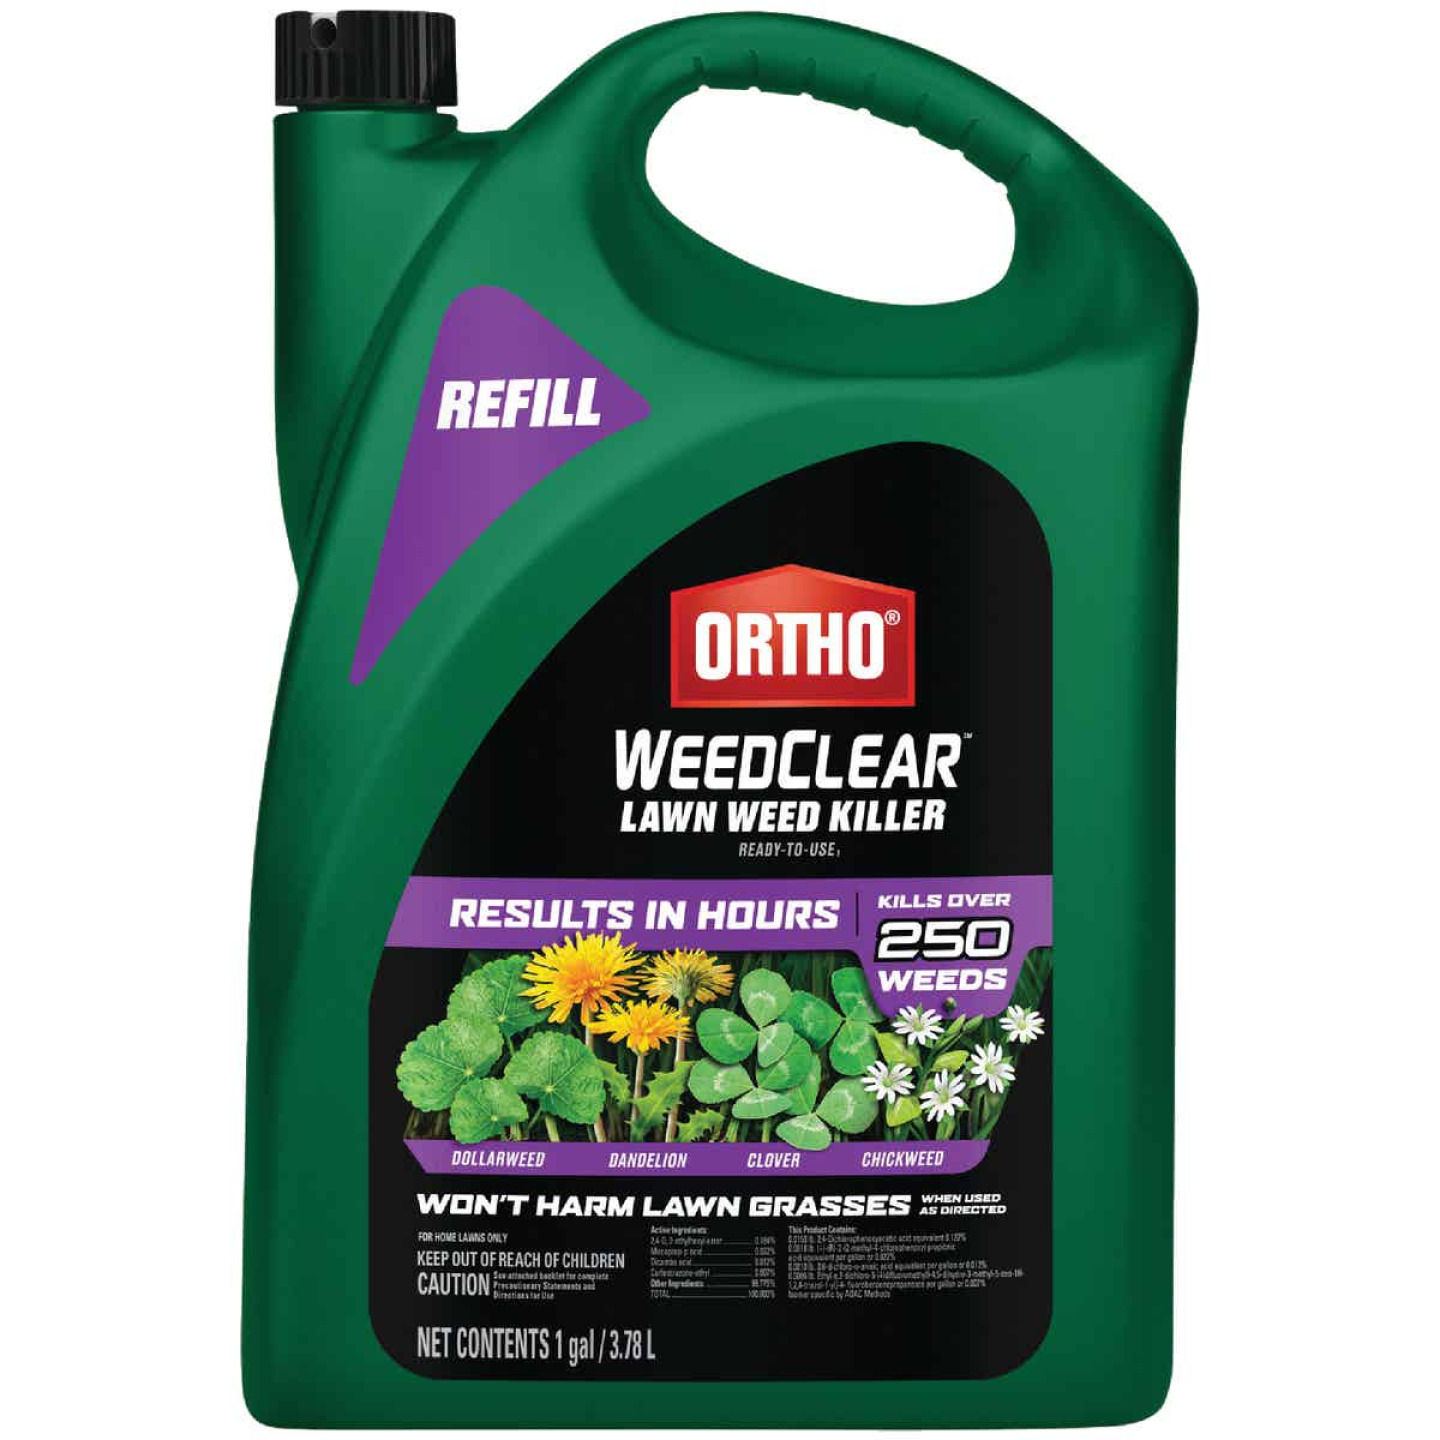 Ortho WeedClear 1 Gal. Ready To Use Refill Southern Lawn Weed Killer Image 1